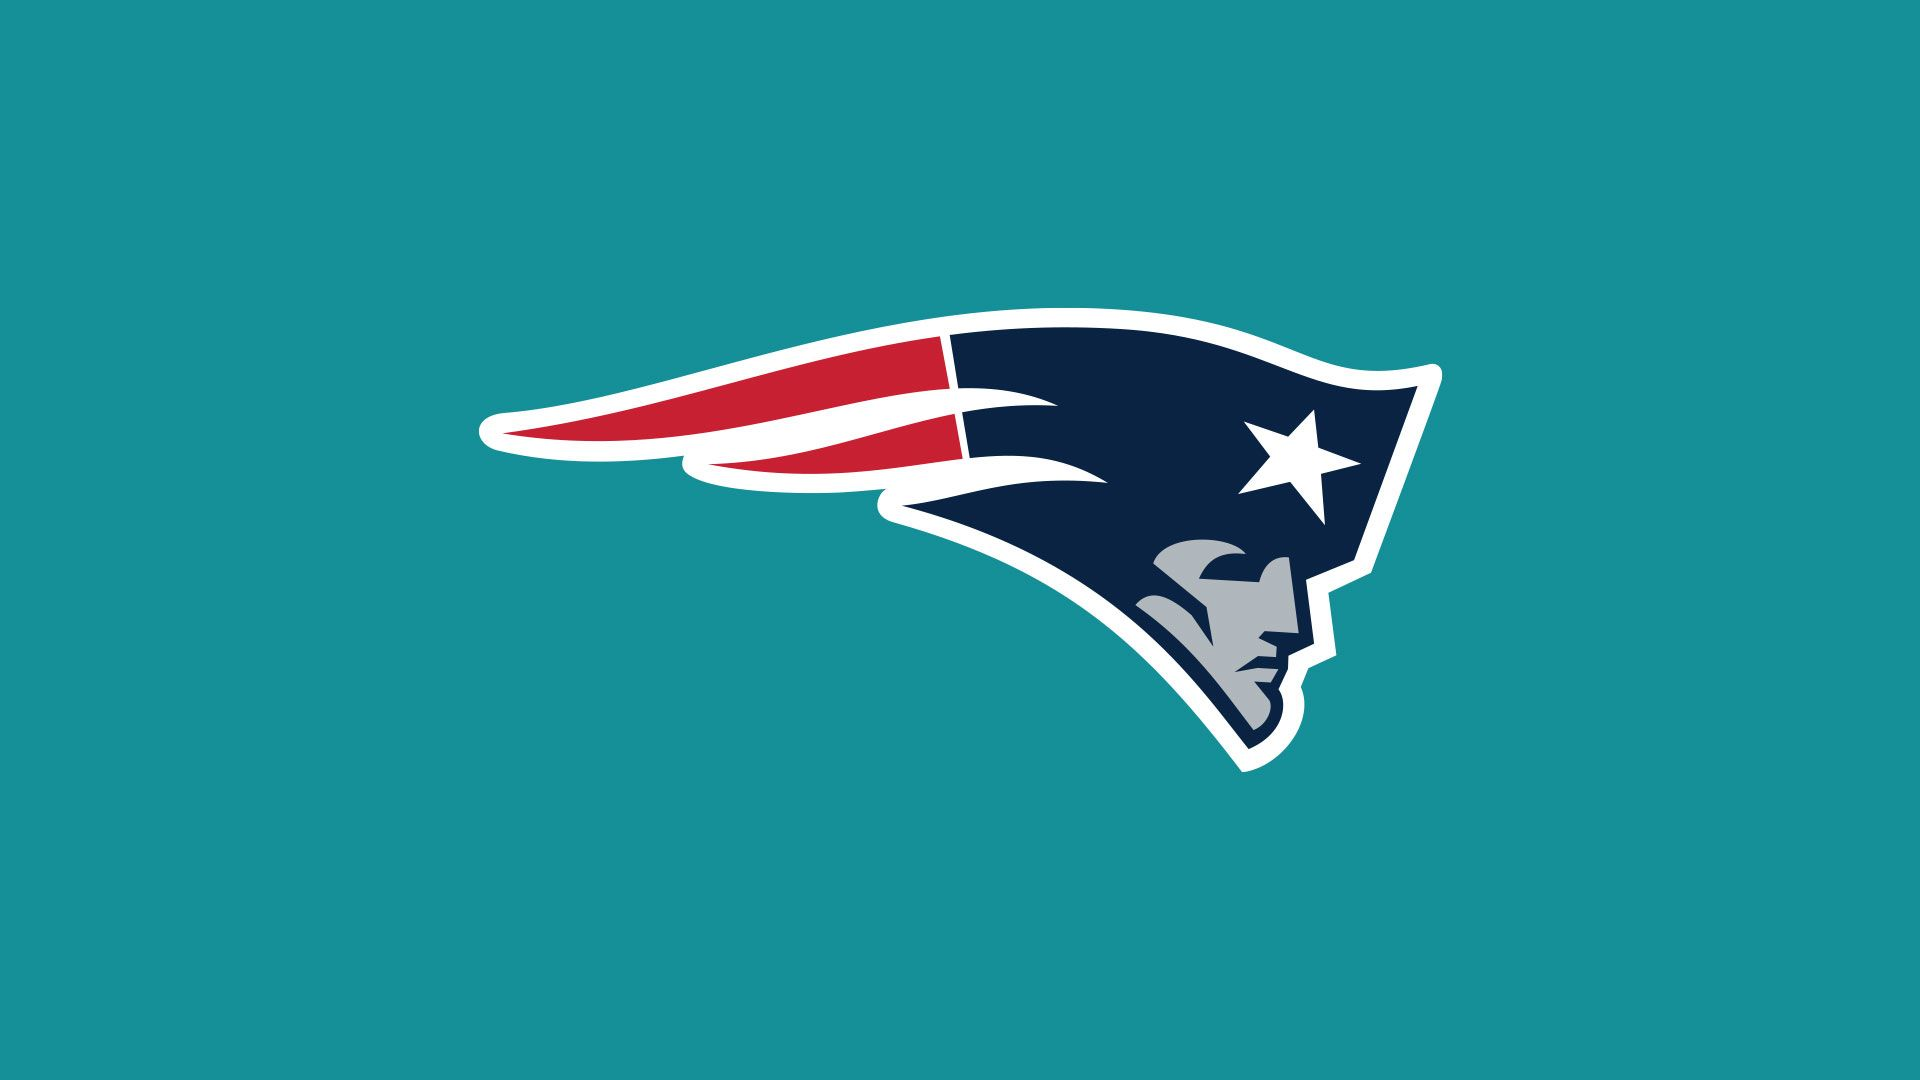 2021 Home Opponent: New England Patriots